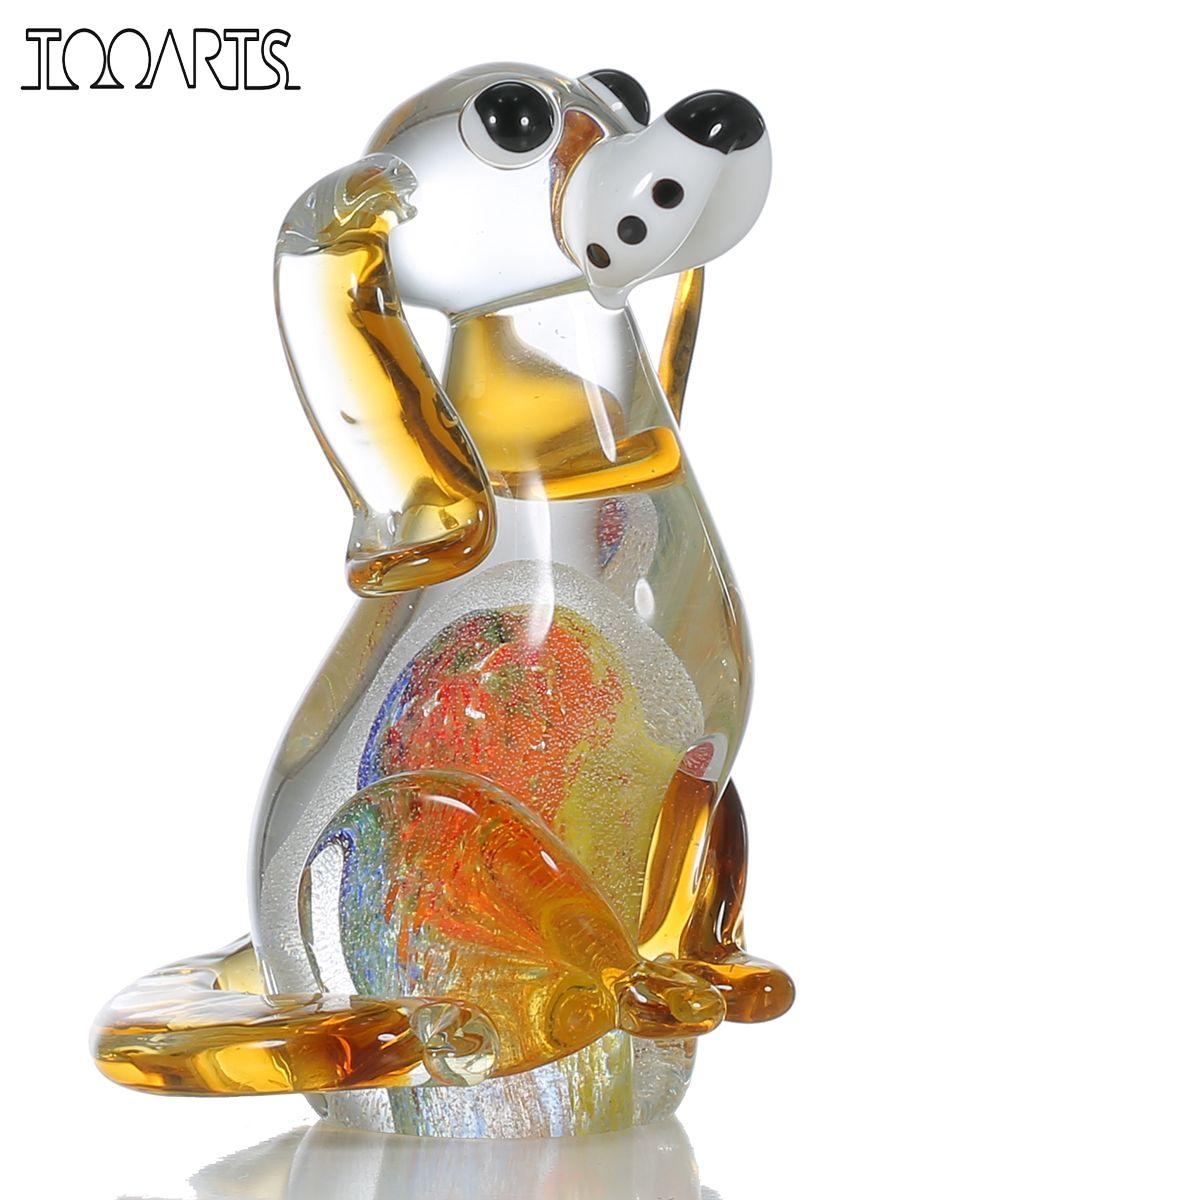 Glass animal ornaments - Tooarts Puppy Glass Figurine Home Decor Animal Figurine Ornament Favor Gift Glass Craft Decoration For Home